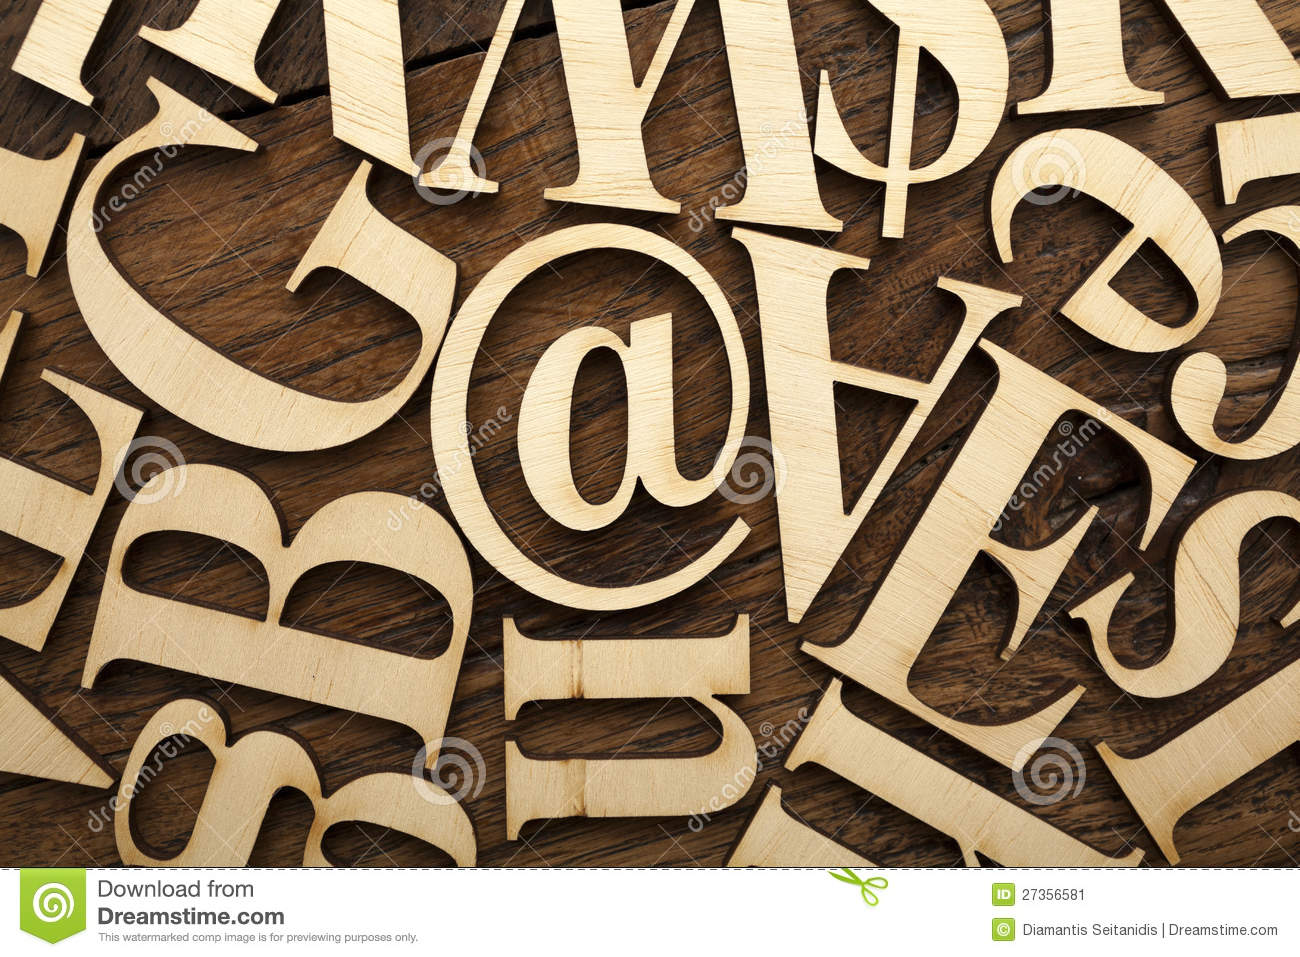 Wooden alphabet letters on old wooden surface.